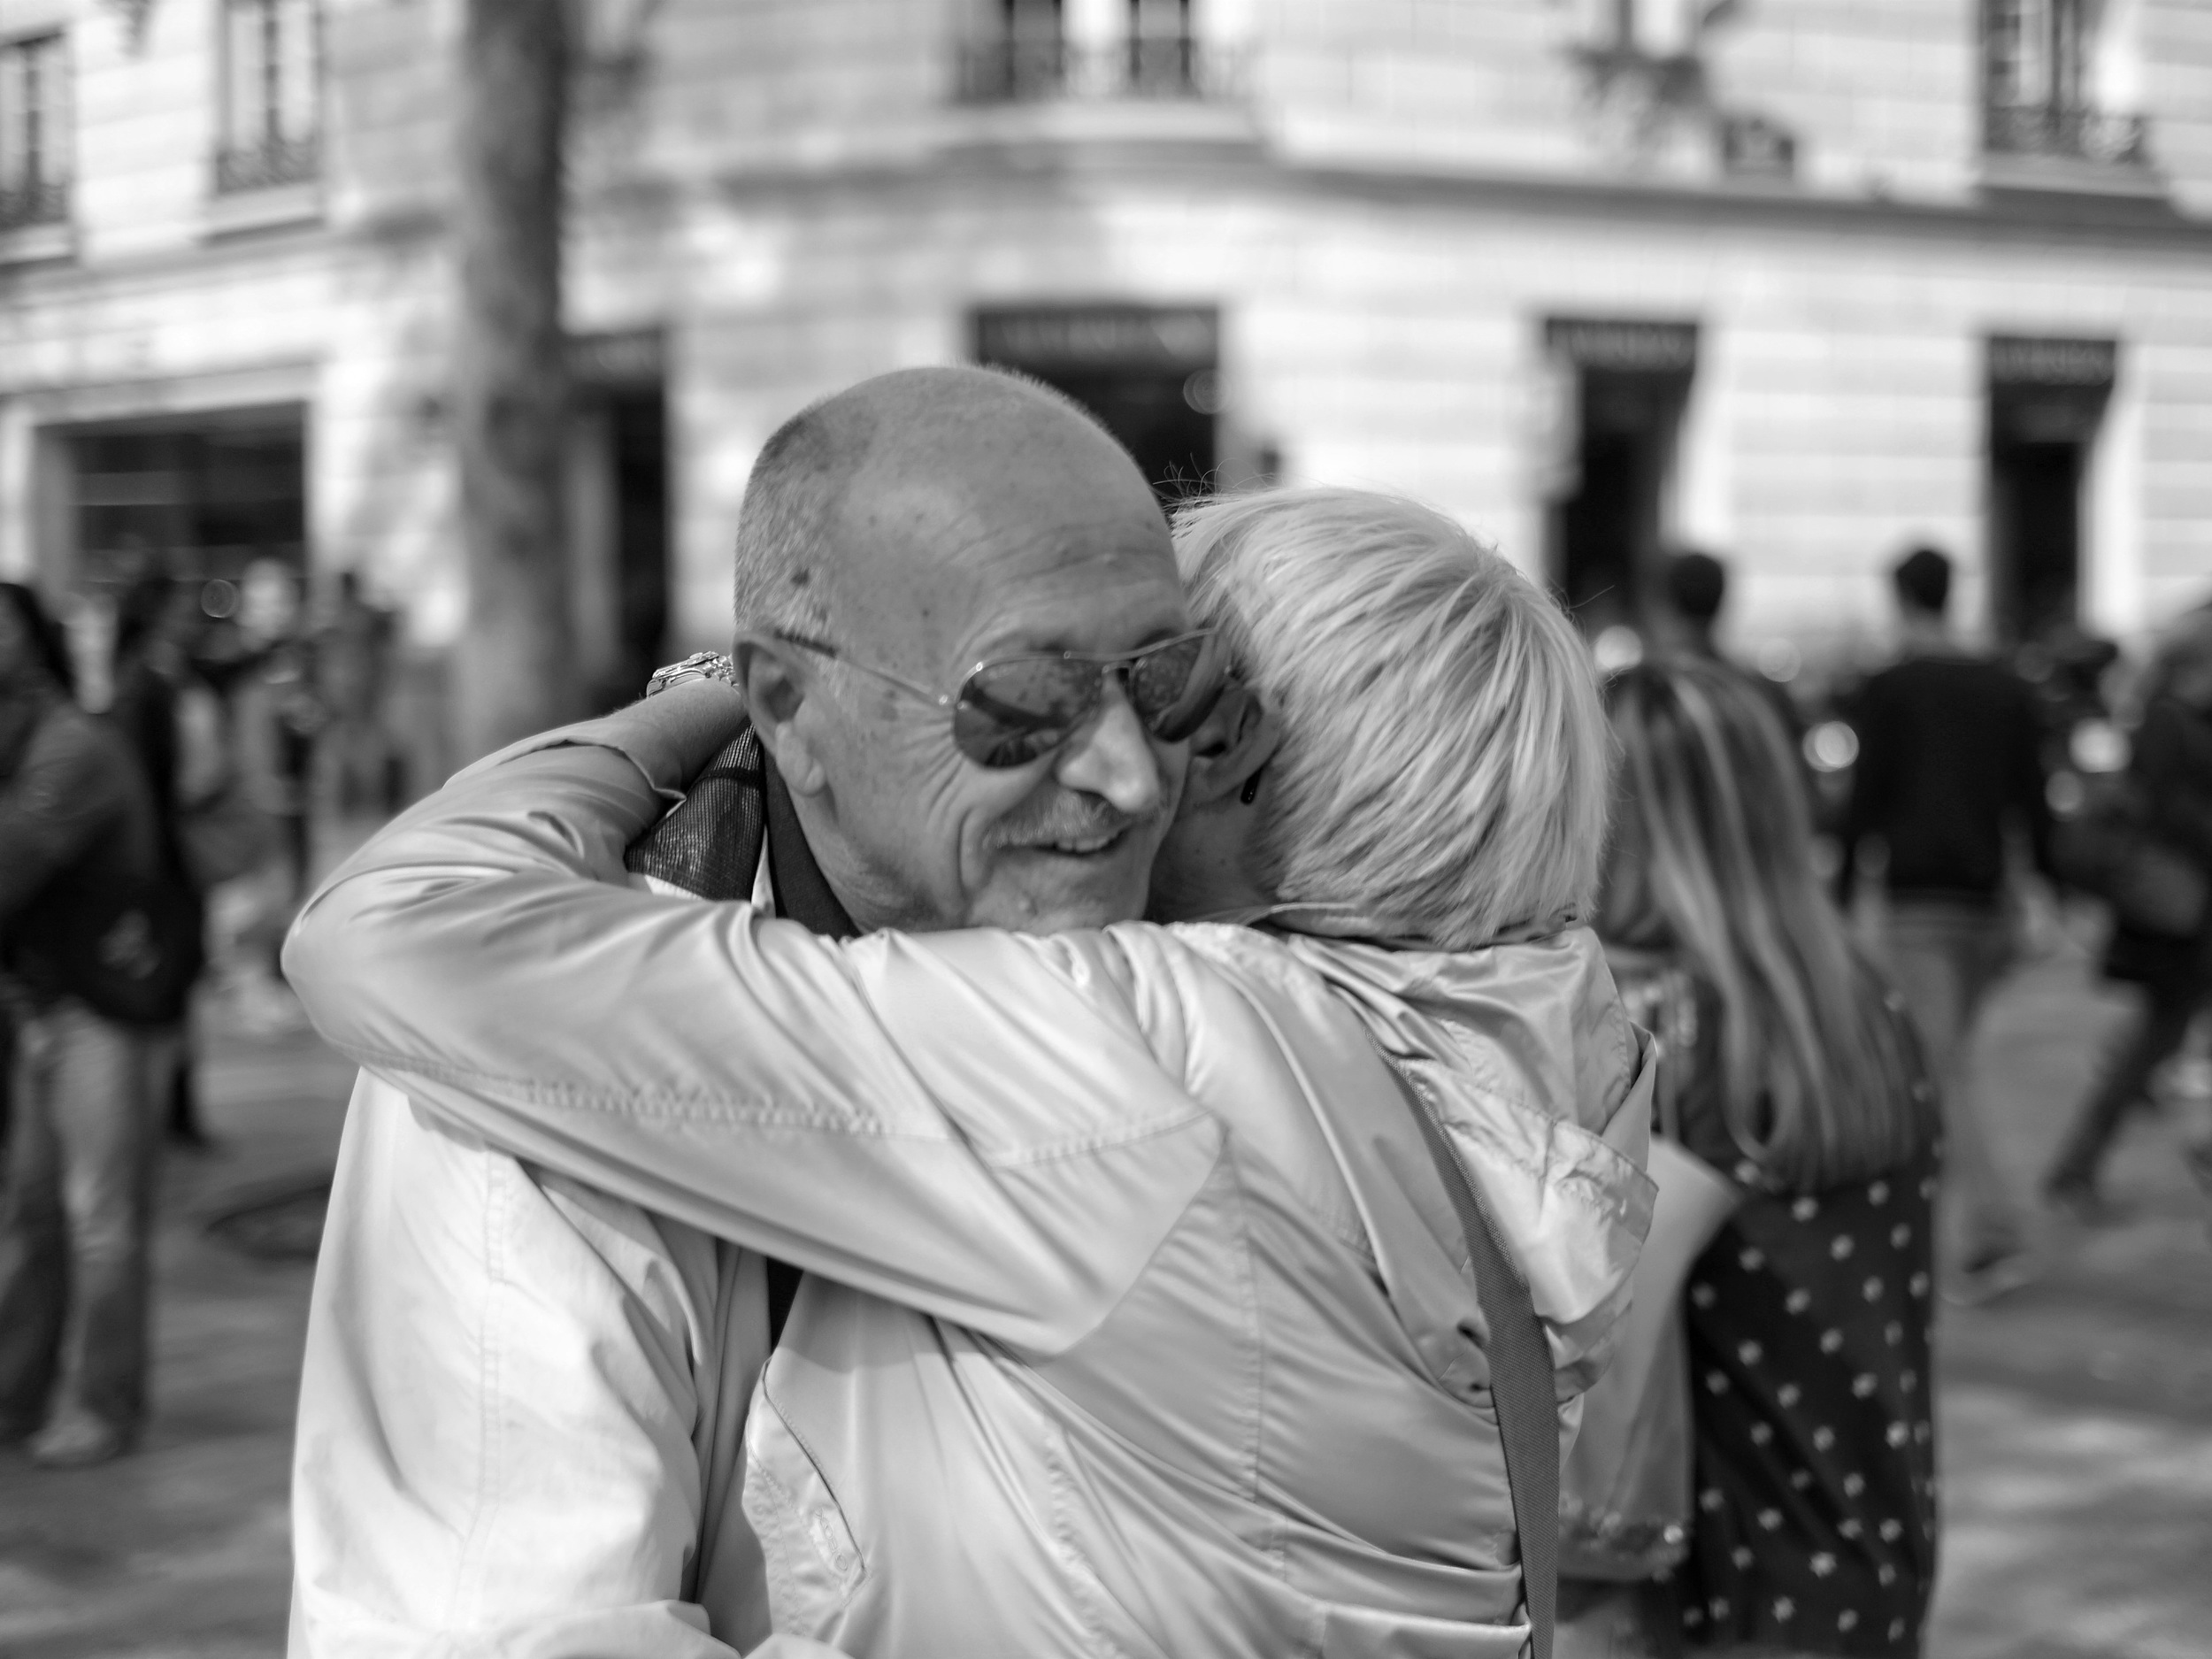 Happy people embracing in Nantes - Fuji X-Pro1